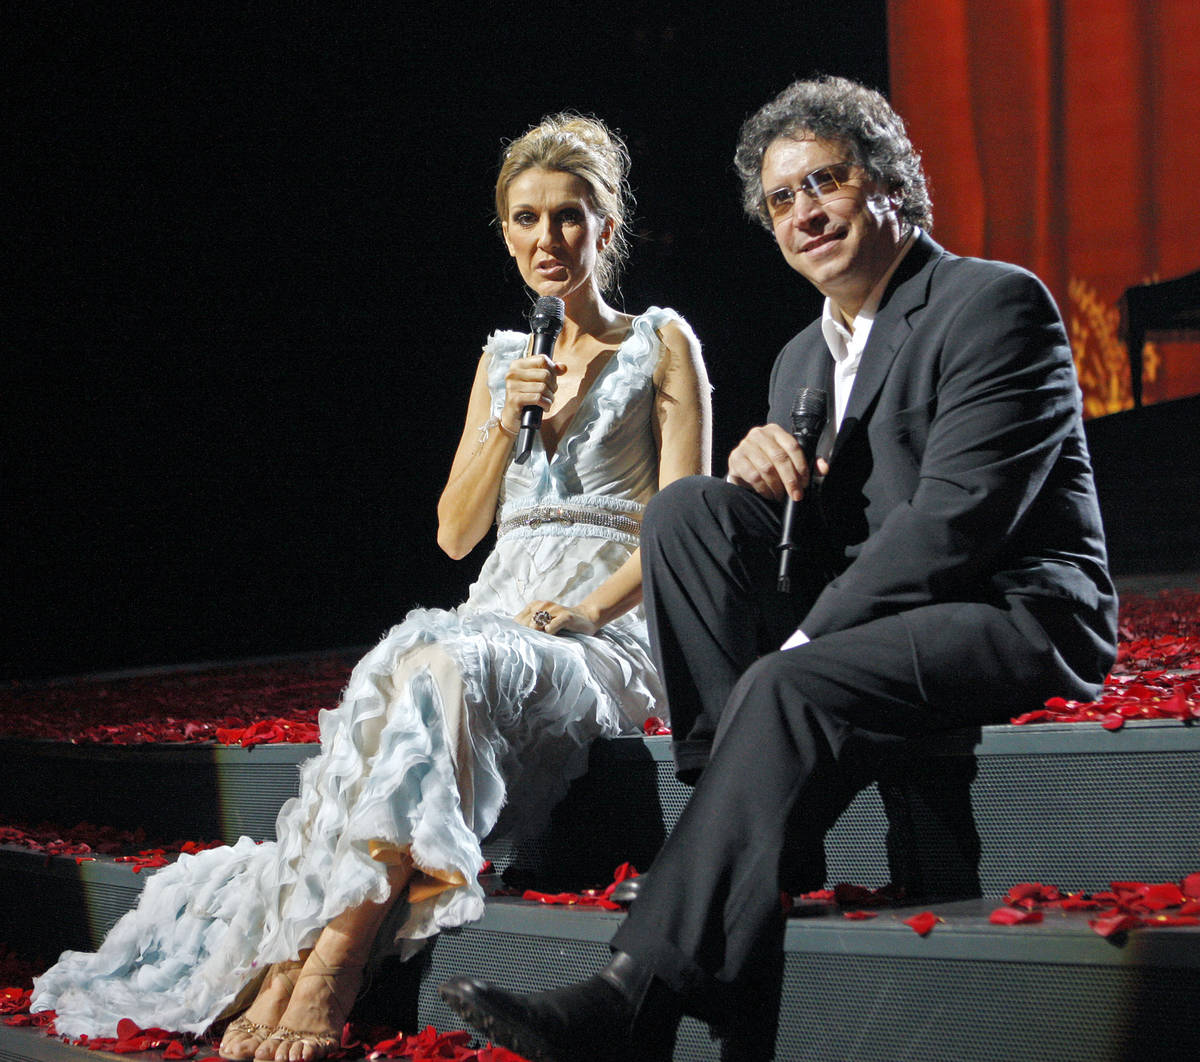 Celine Dion answers questions during a press conference as Franco Dragone looks on following th ...